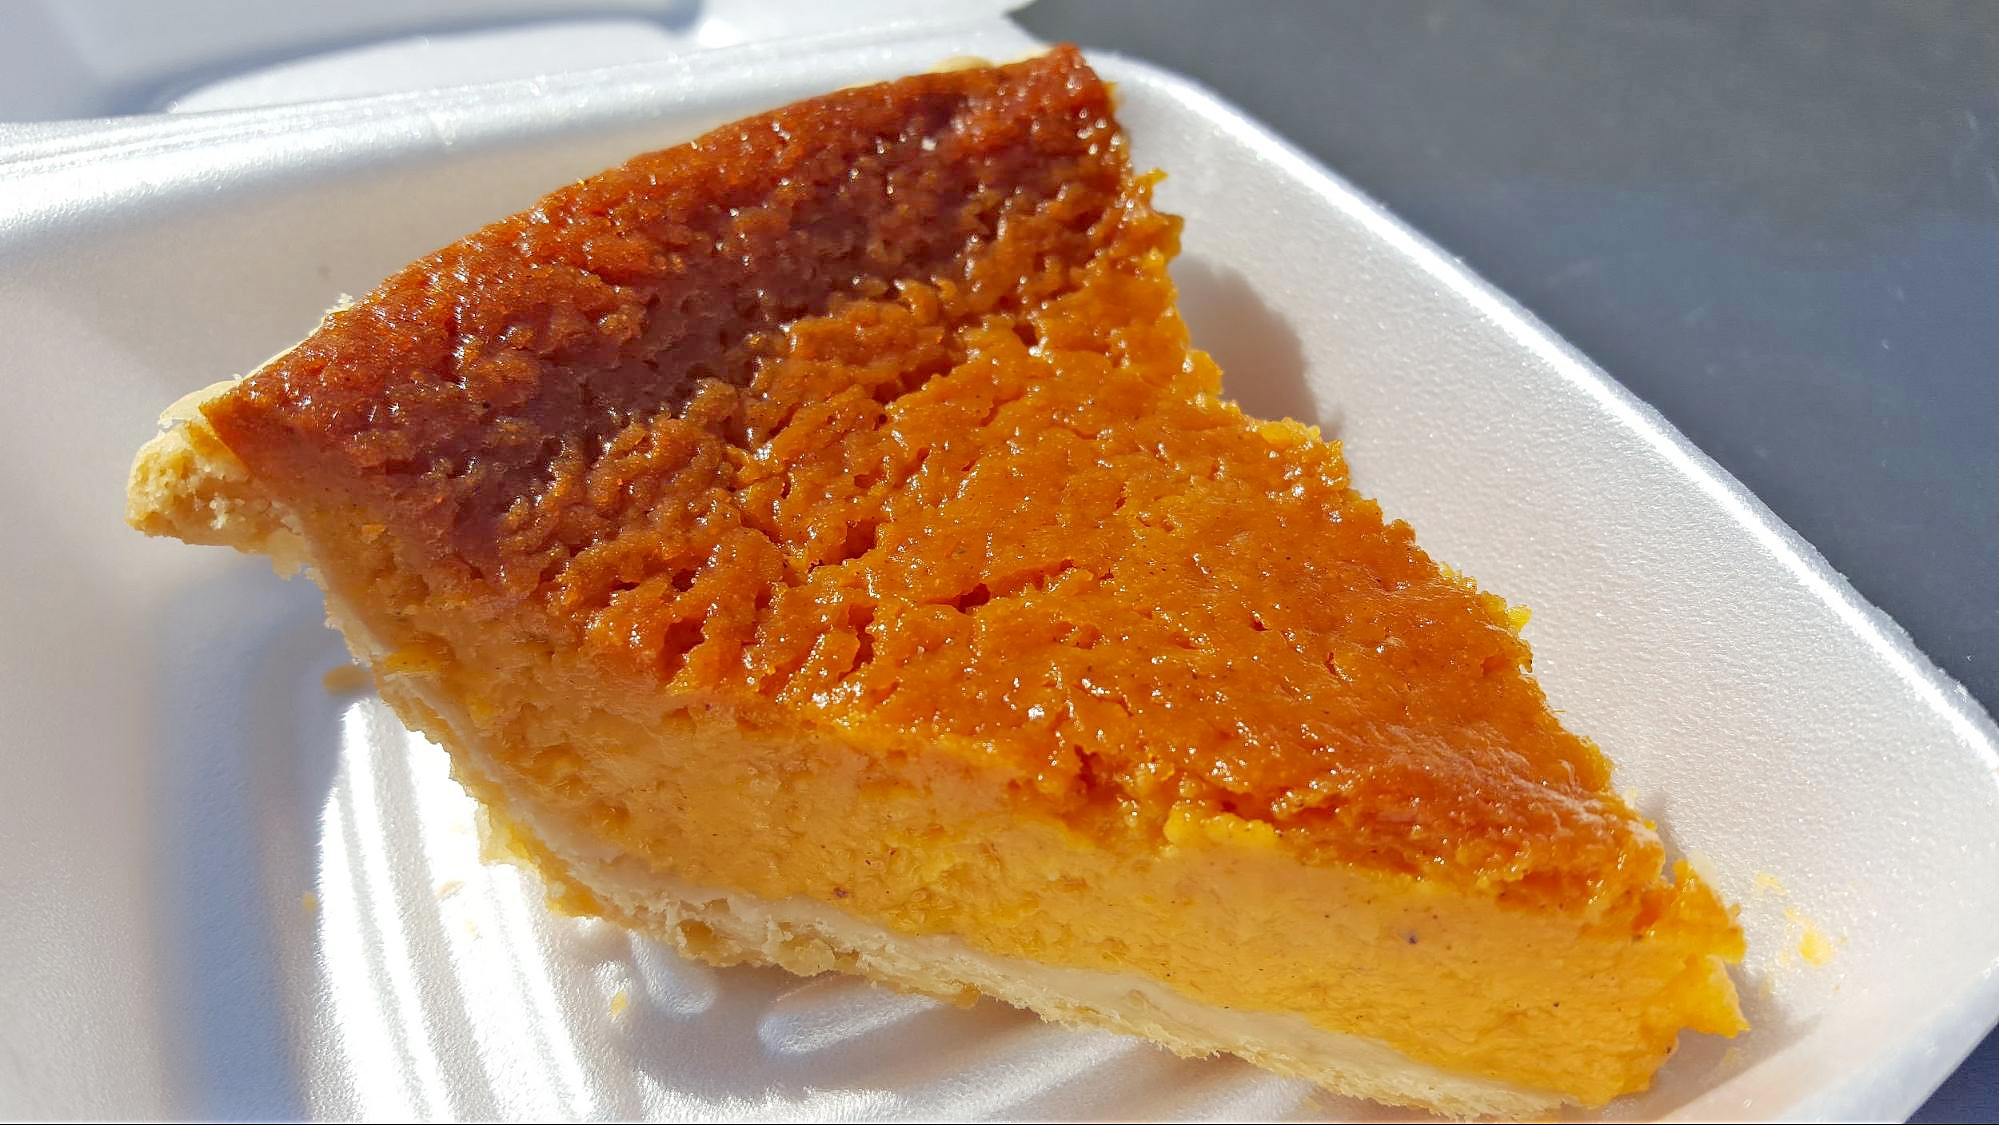 Sweet potato pie at Leon's World Finest Bar-B-Que in Galveston